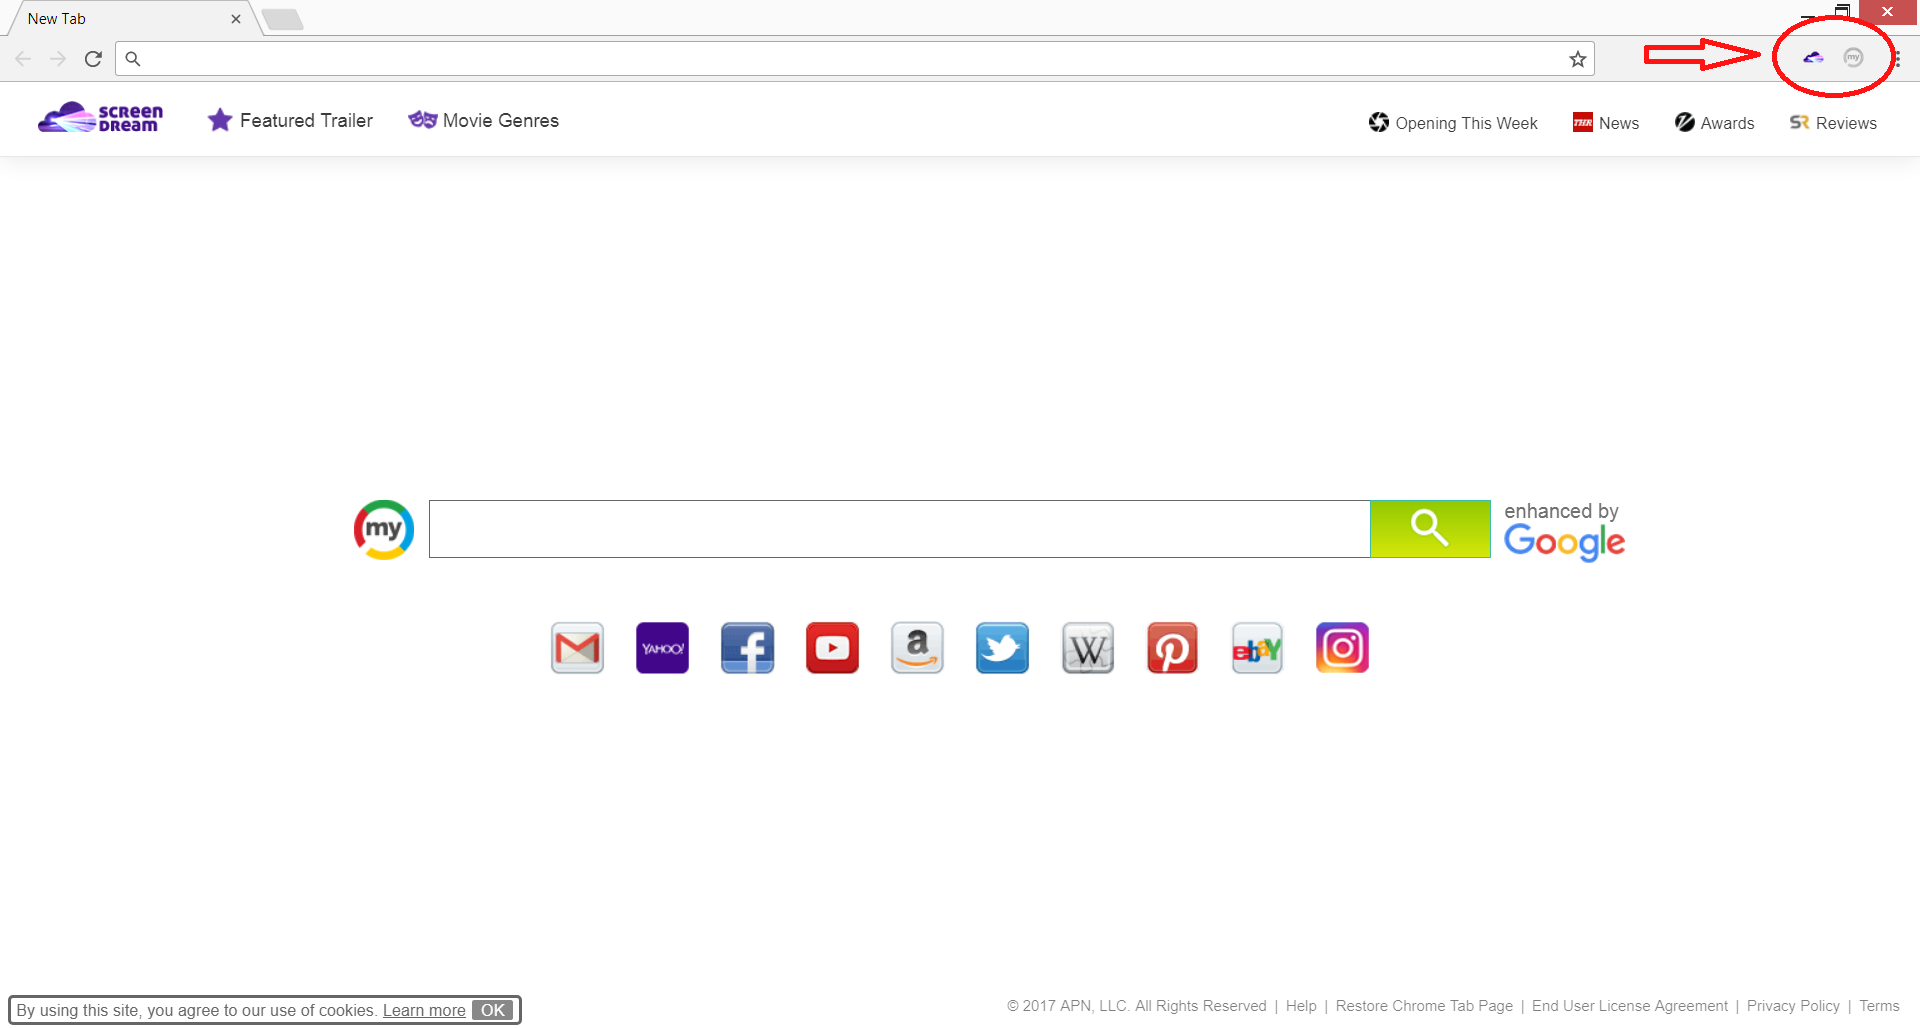 chrome browser affected by Screendream.yournewtab.com Screen Dream and MySearch D3-3 browser extensions